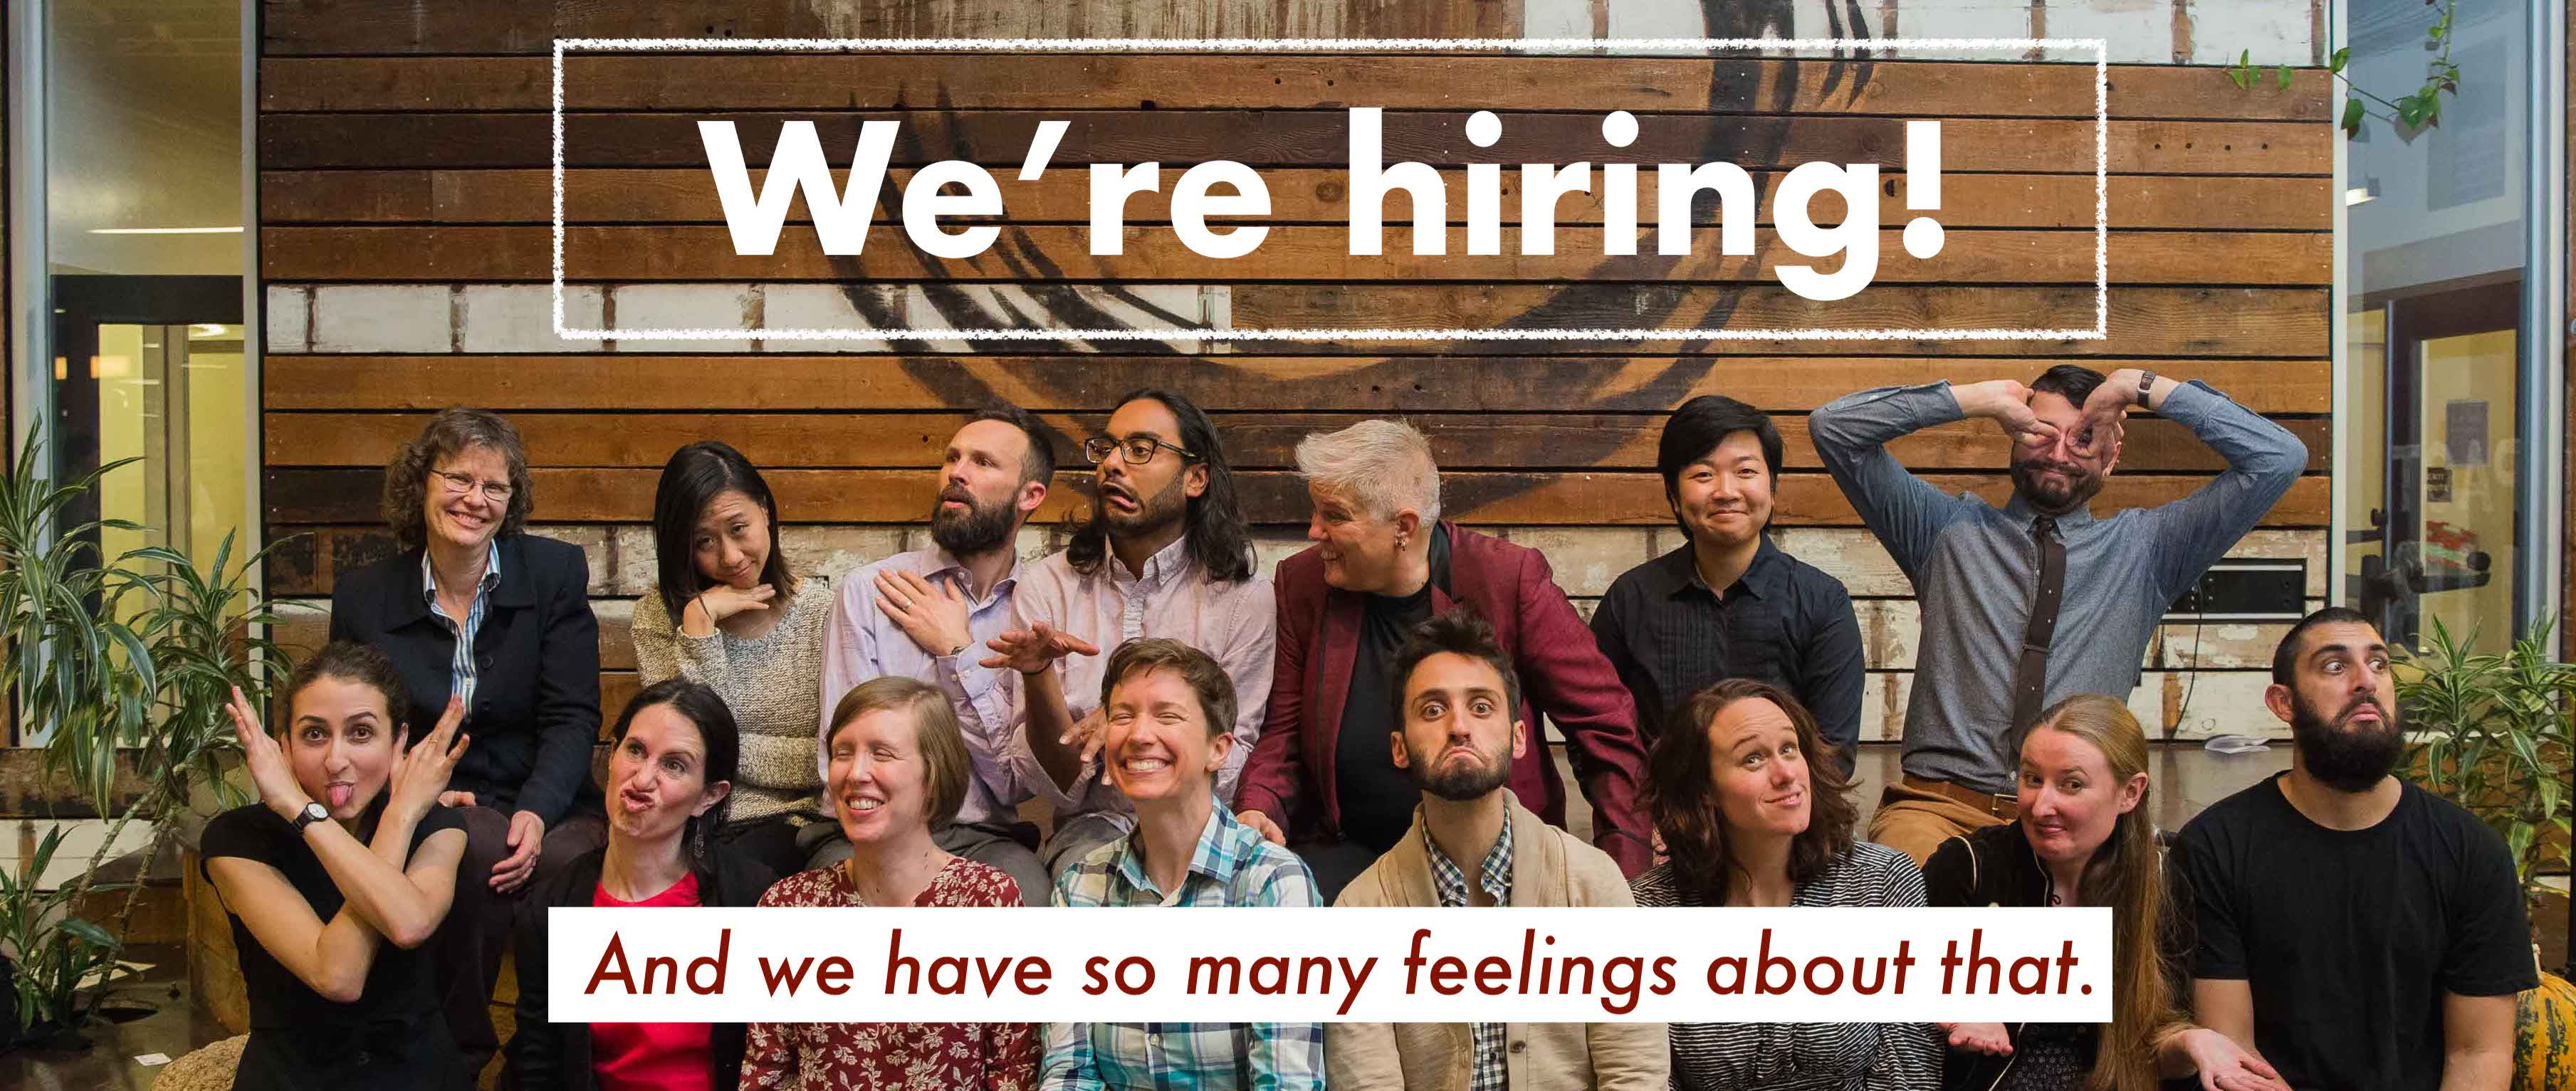 We're Hiring! And we have lots of feelings about that. Mostly good ones.